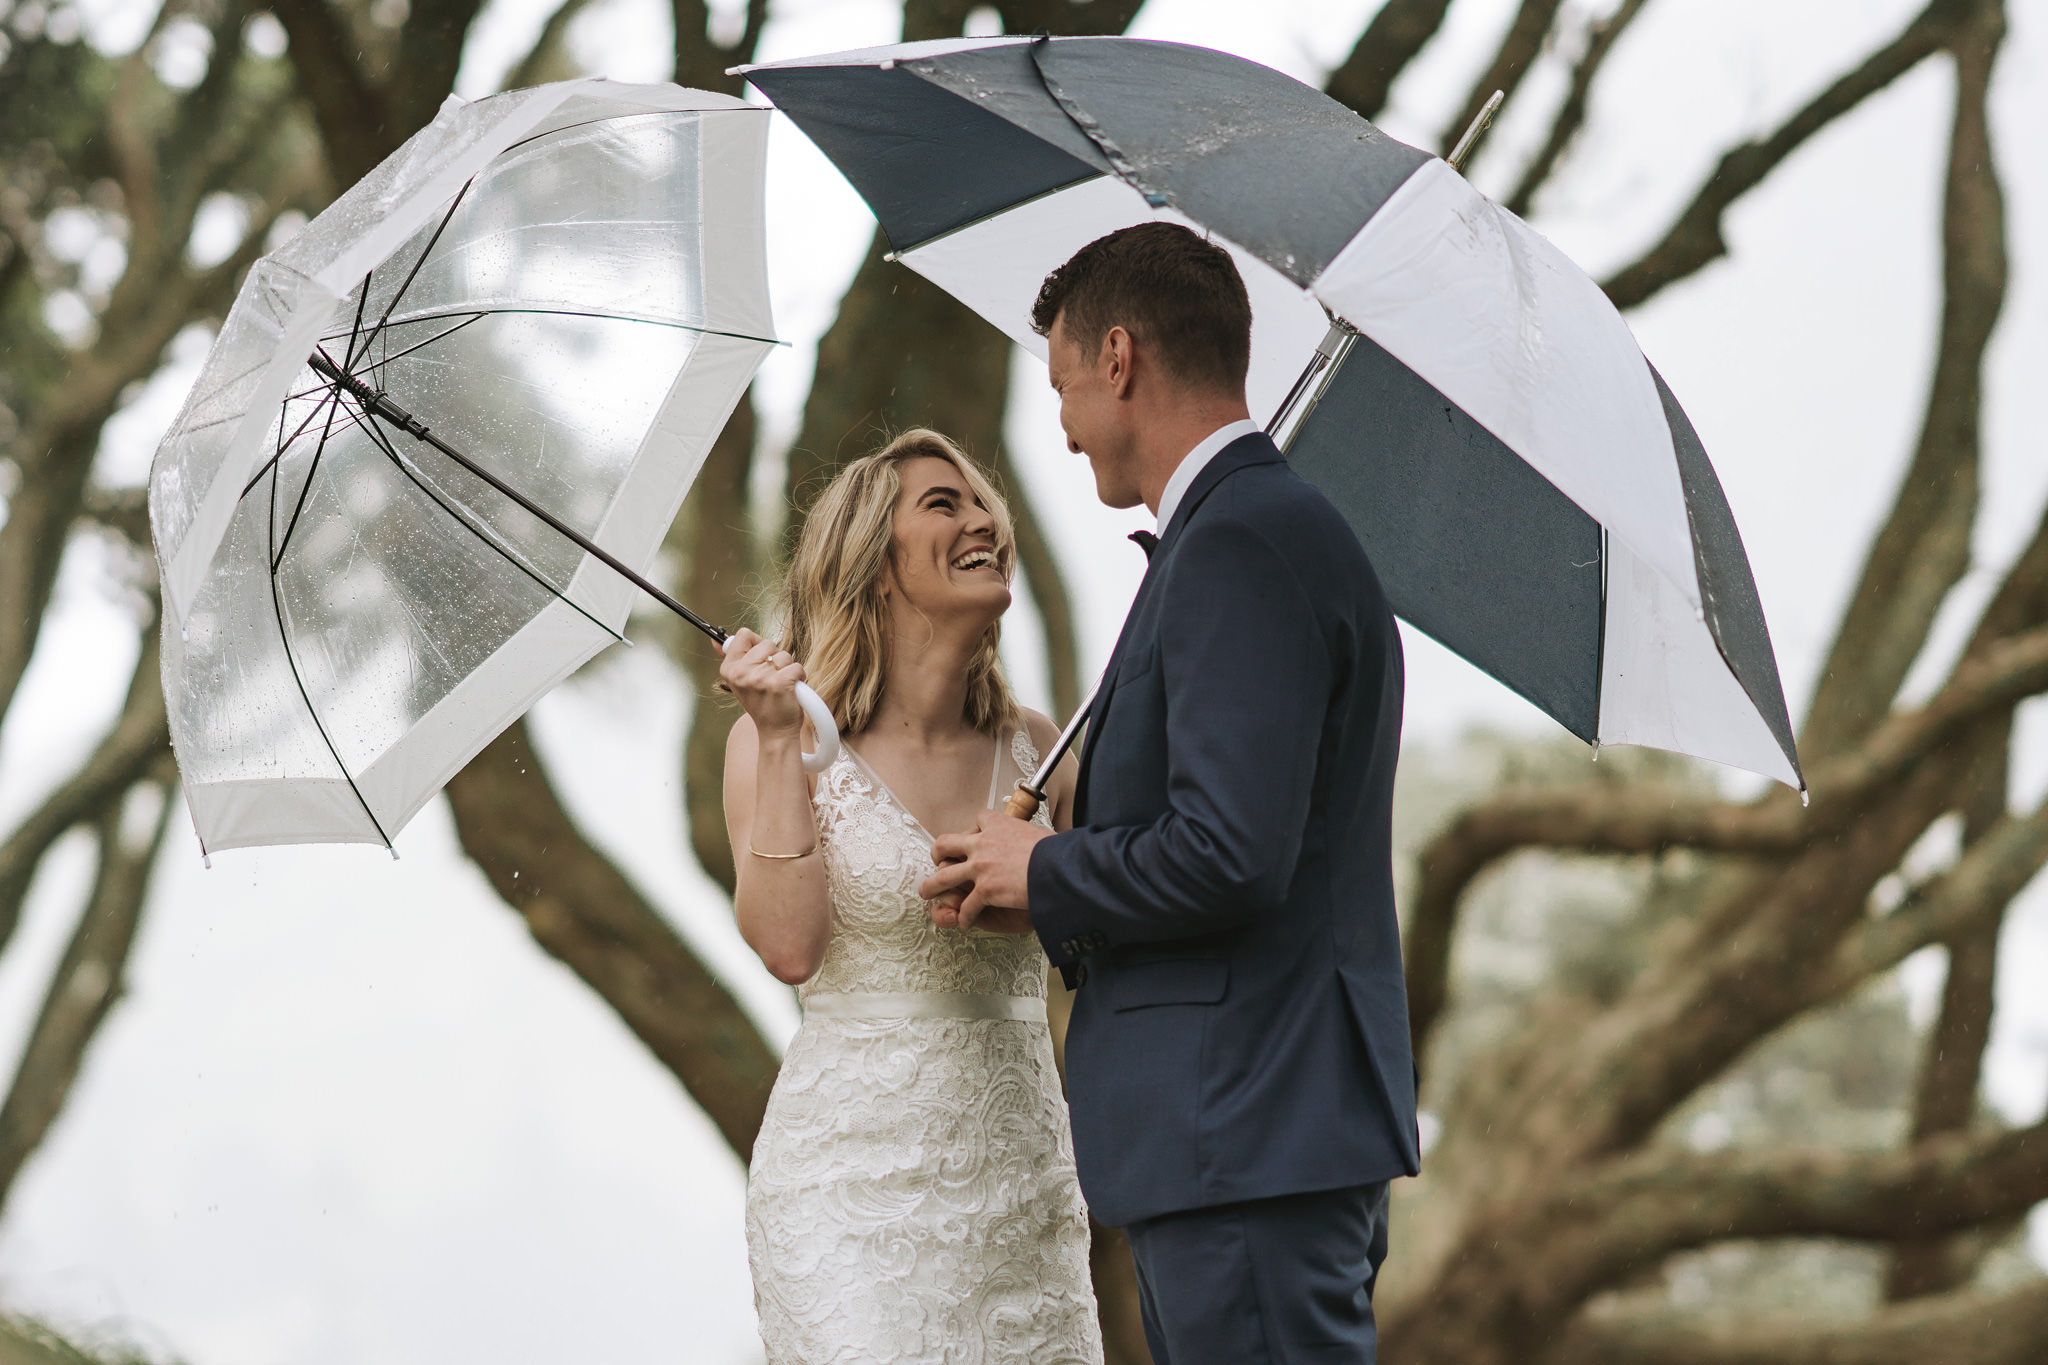 newfound-s-a-tauranga-new-zealand-wedding-photography-175